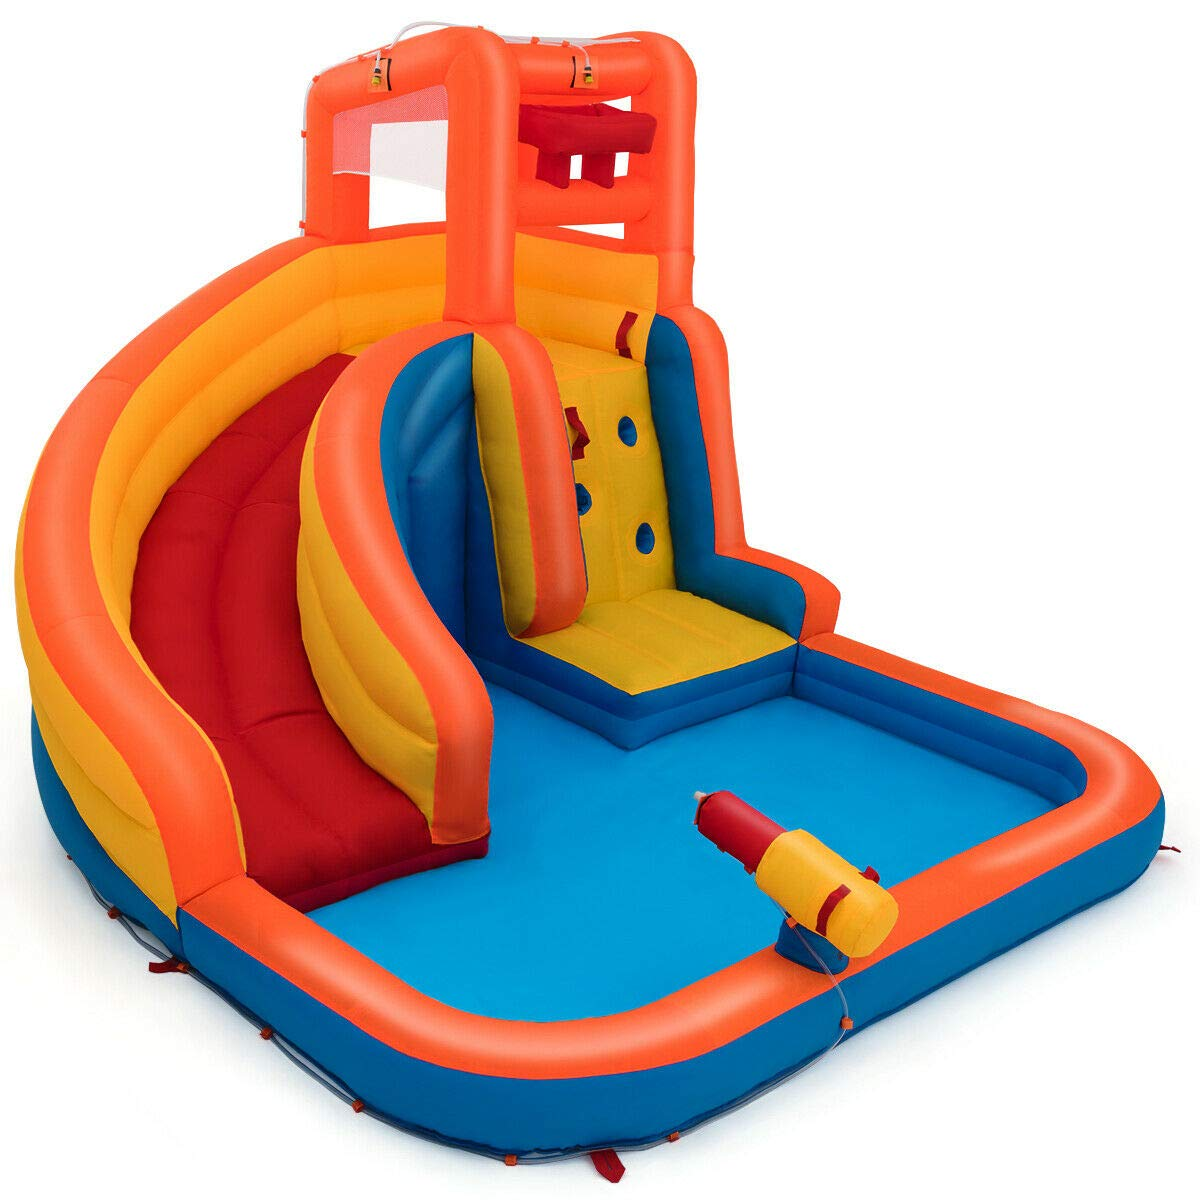 Heize Best Price Orange Inflatable Splash Water Bouncer Slide Bounce House w/ Climbing Wall & Water Hose Splash Pool(U.S. Stock) by Heize Best Price (Image #1)